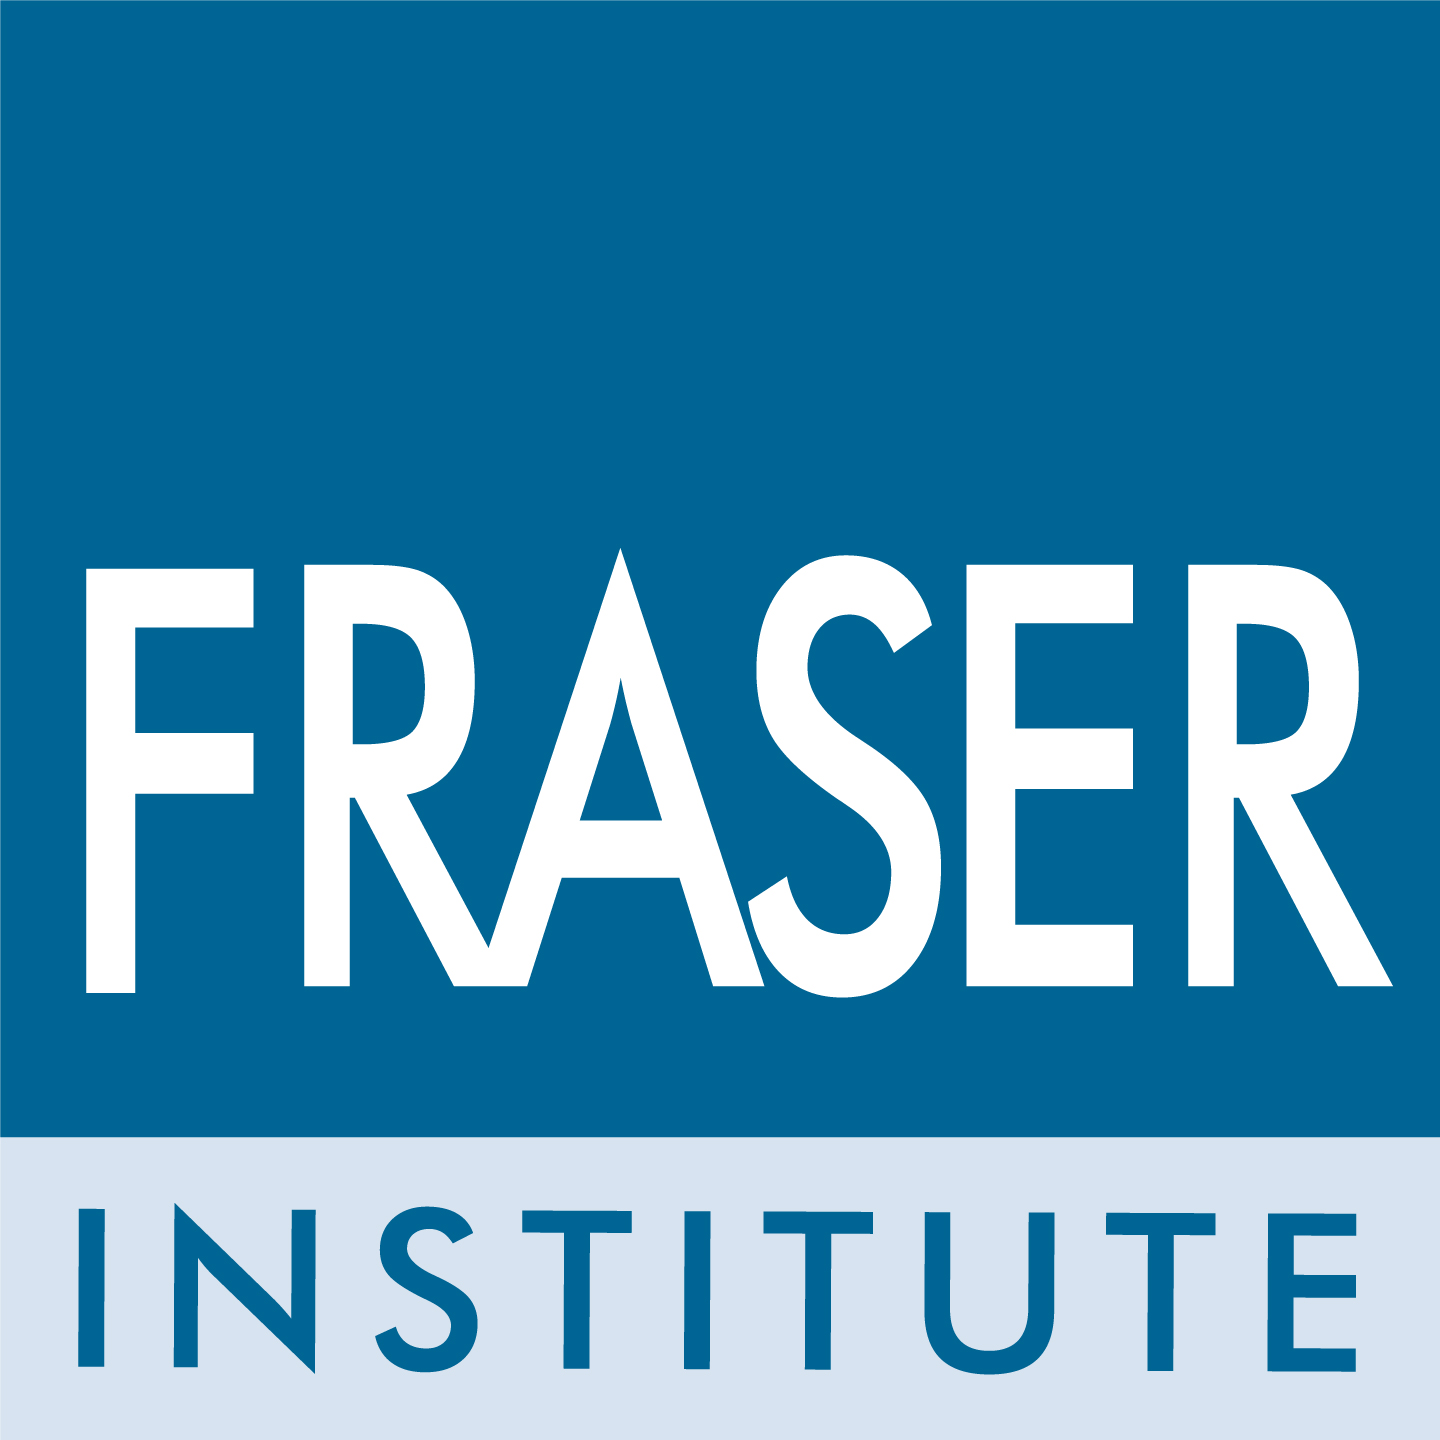 Fraser Institute News Release: International group of think tanks denounces China's encroachment on Hong Kong in open letter